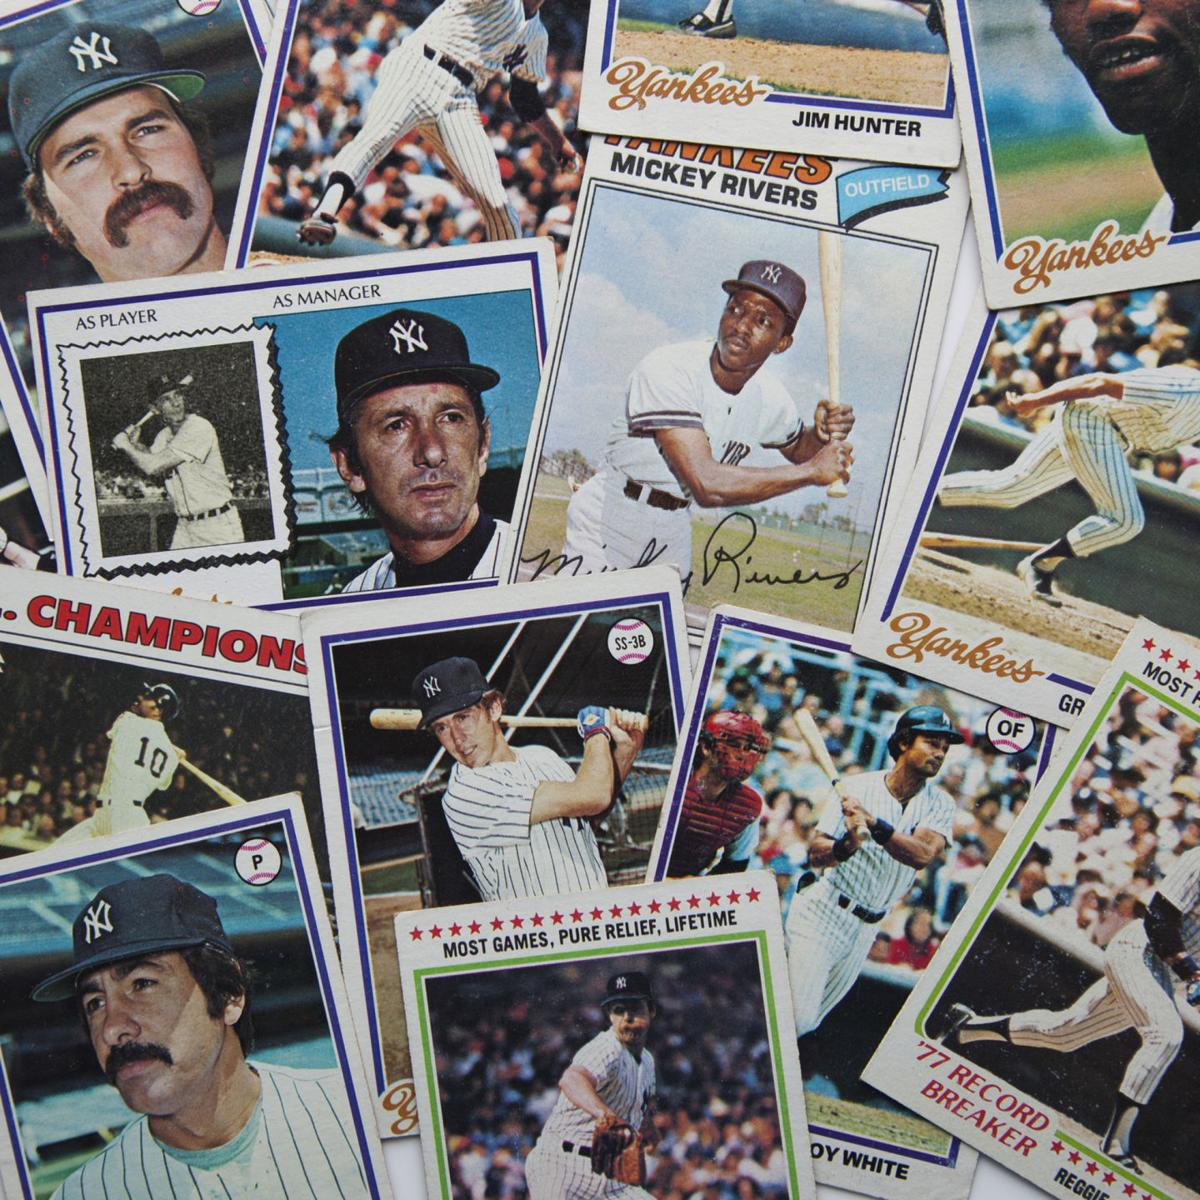 Baseball card production runs are no where close to where they were in the '80s and '90s, says David Leiner, the global general manager of sports and entertainment for Topps.